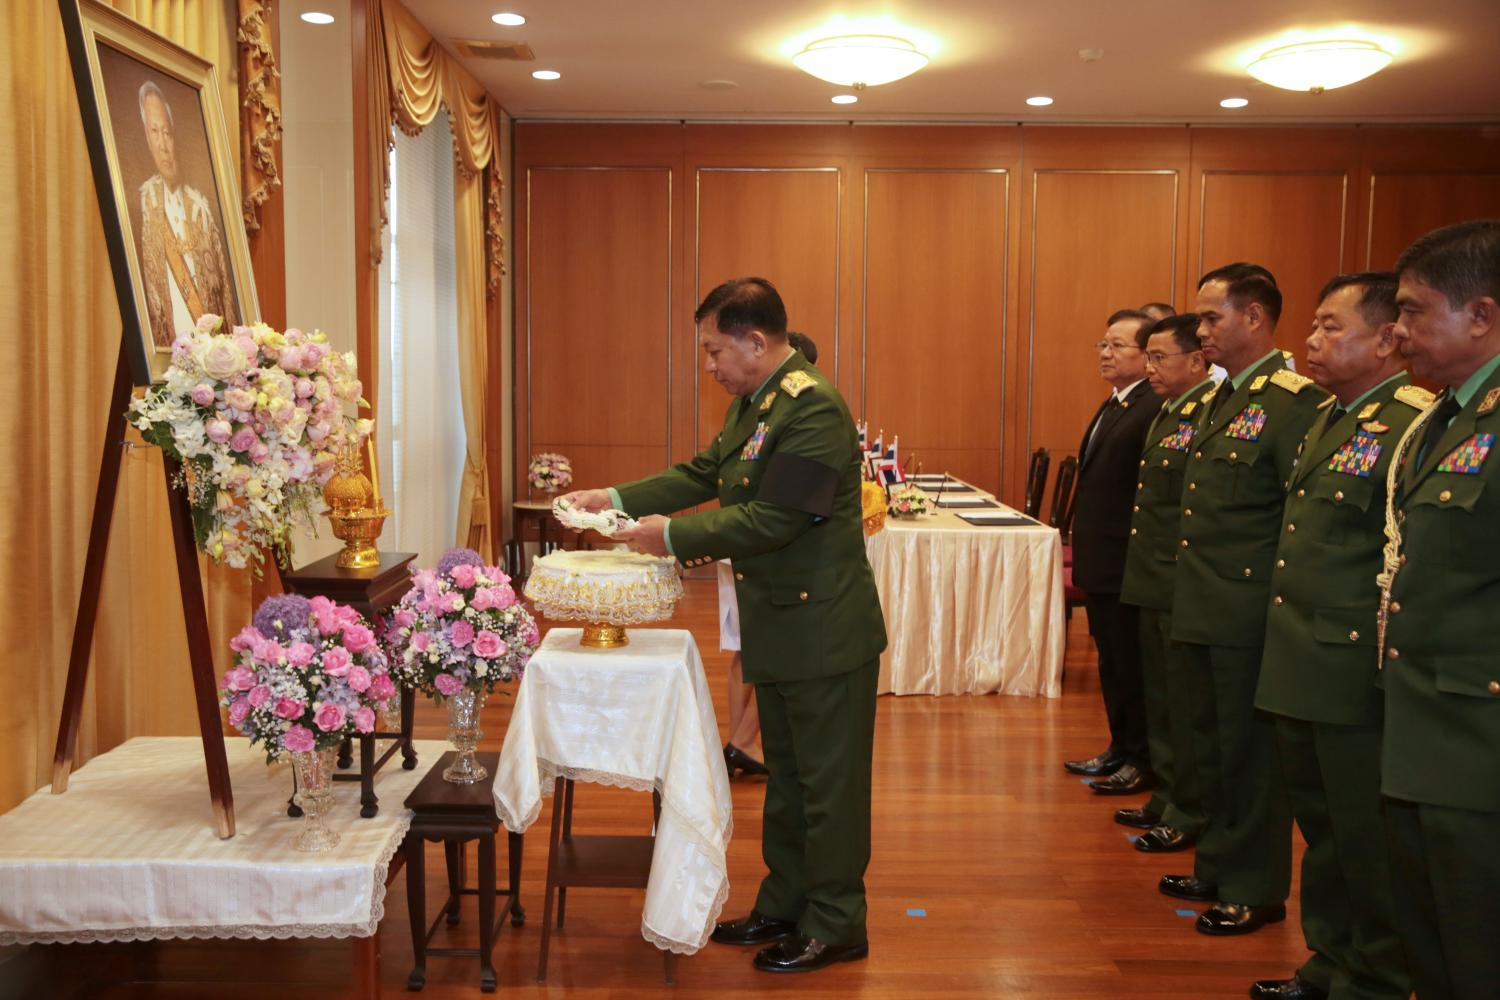 Myanmar's army commander-in-chief Senior General Min Aung Hlaing leads a delegation of Myanmar officers to sign a book of condolences for the passing of Gen Prem Tinsulanonda at the Office of the Privy Council.(Photo by Chanat Katanyu)